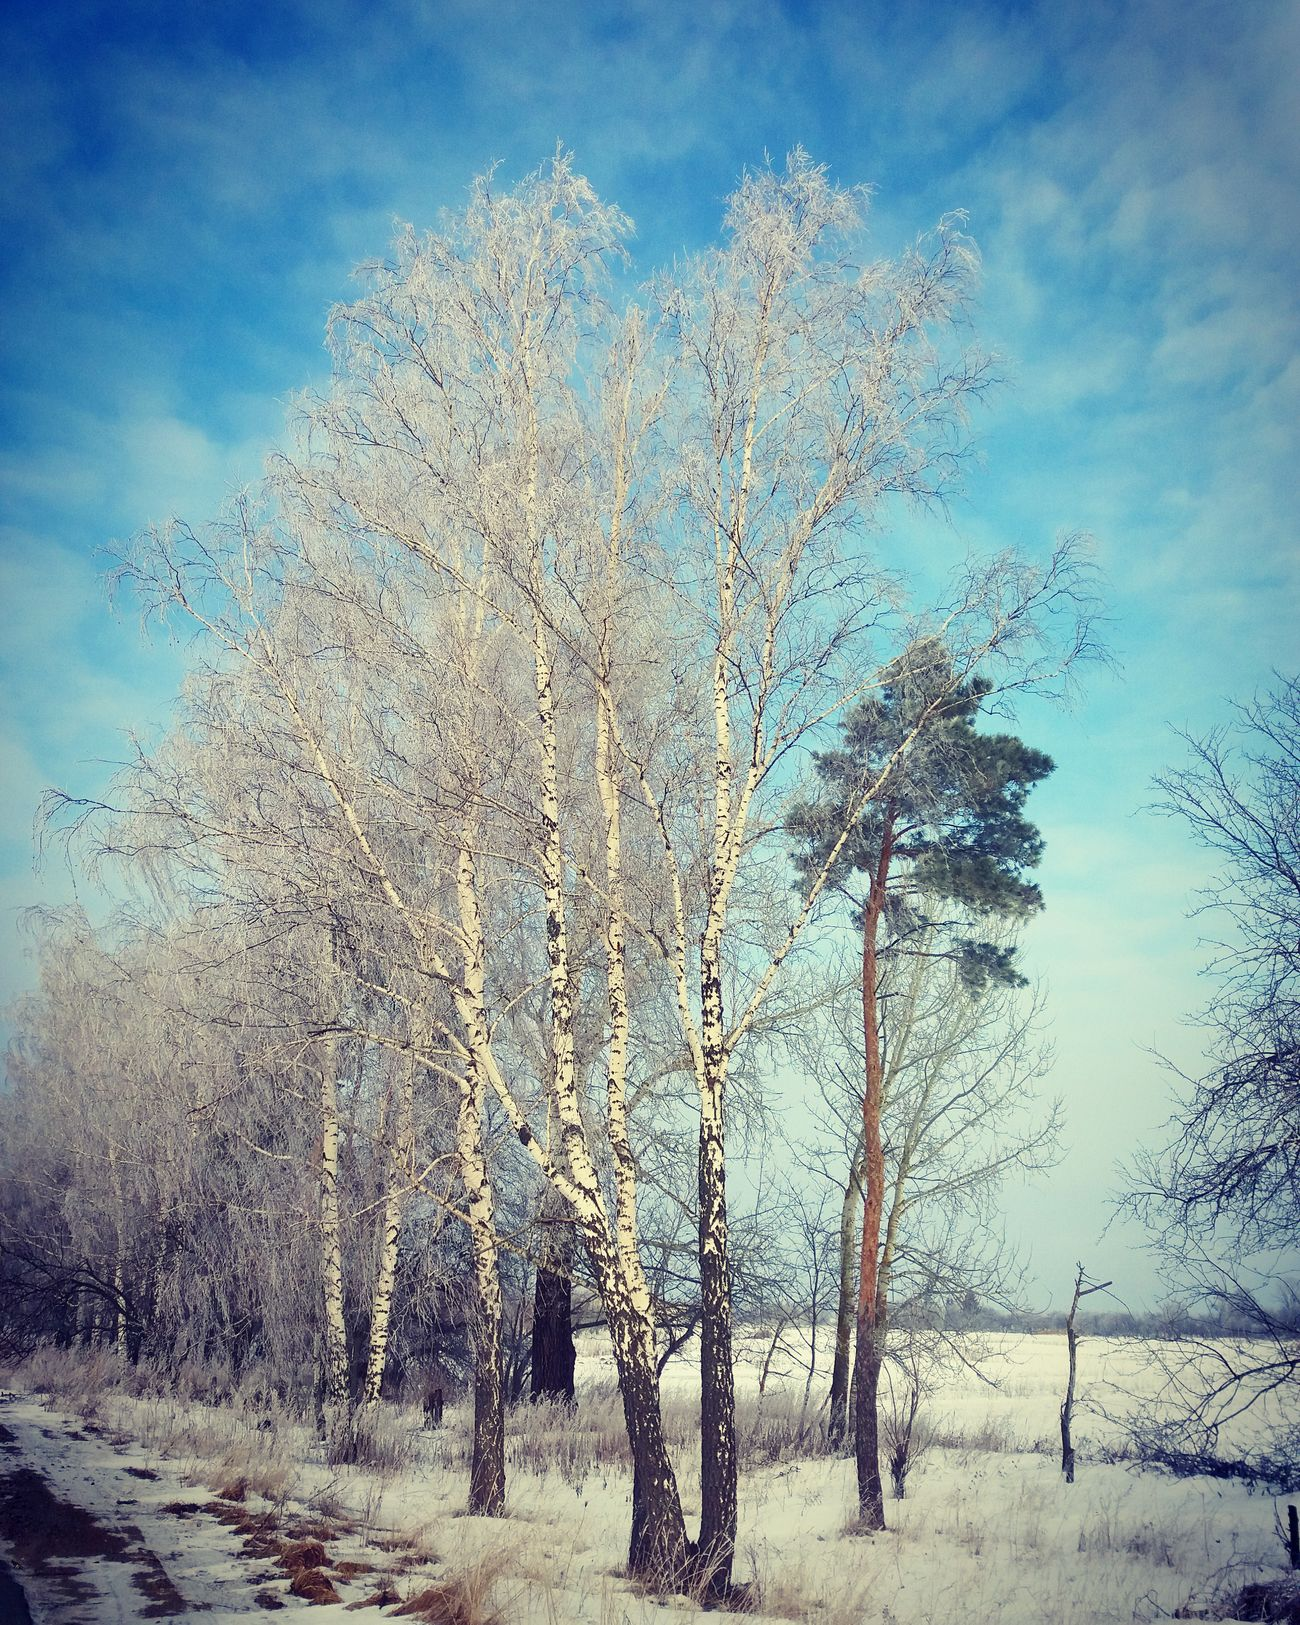 Freezingweather Beauty In Nature Taking Photos No People Forest Cold Temperature Snow ❄ Morning Landscape Phonephotography📱 Amazing View